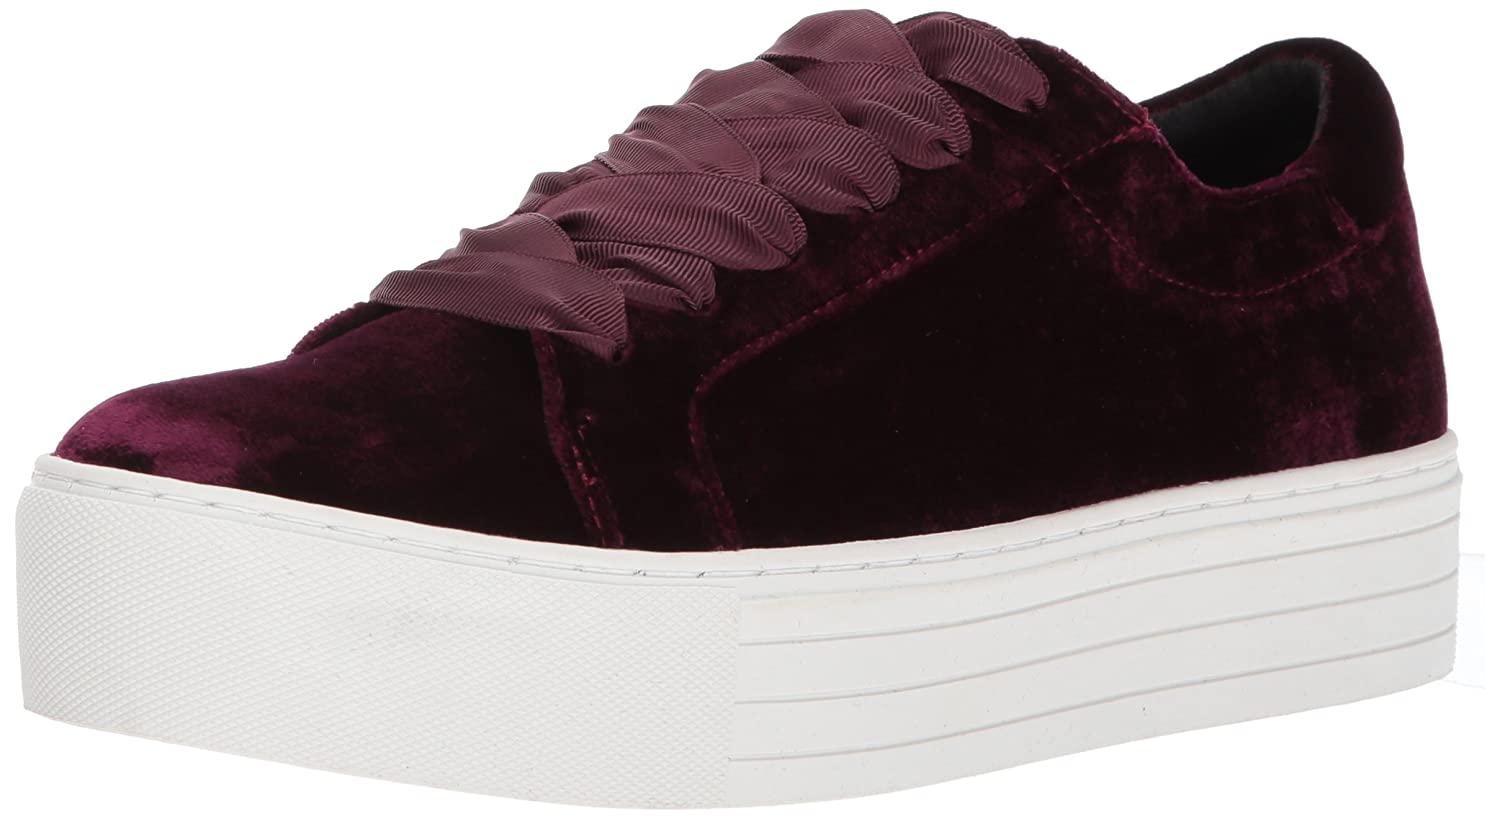 Kenneth Cole New York Women's Abbey Platform Lace up Velvet Fashion Sneaker B071XNSZ8K 7 B(M) US|Wine